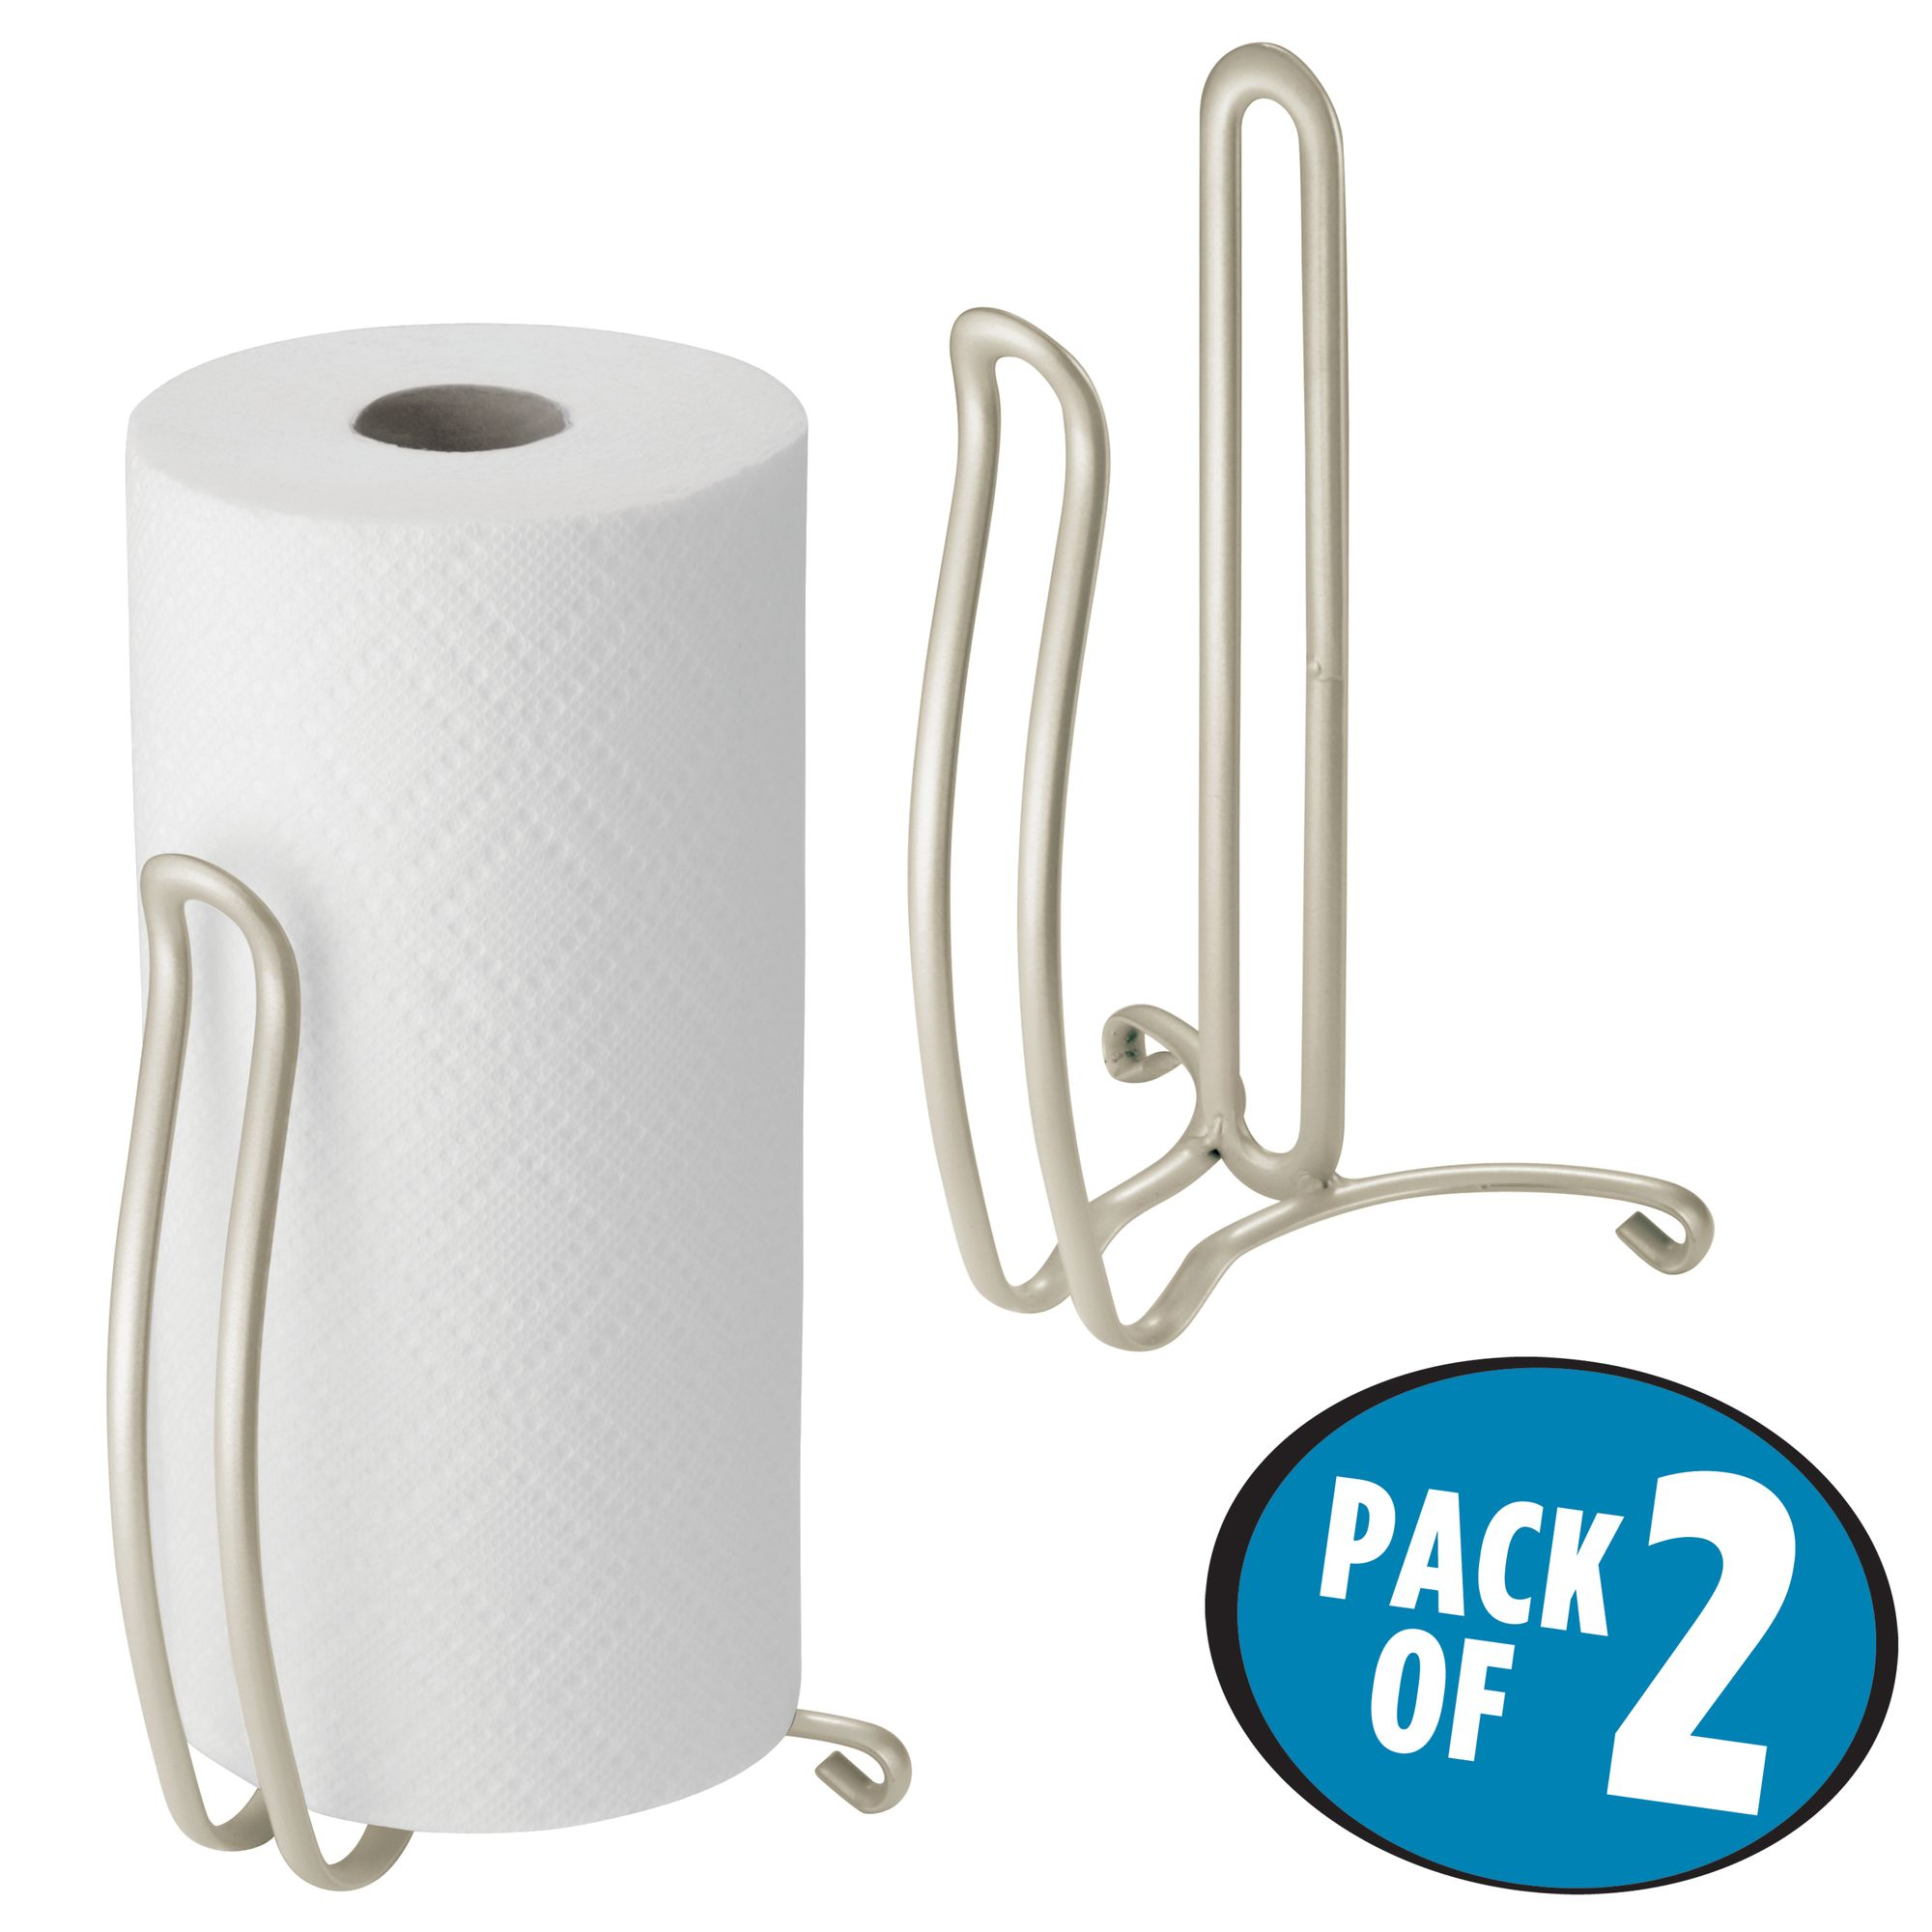 mDesign Metal Steel Vertical Disposable Paper Towel Holder Stand//Dispenser Chrome Fits Standard and Jumbo-Sized Rolls for Kitchen Countertop Pantry Laundry or Utility Room Garage Storage